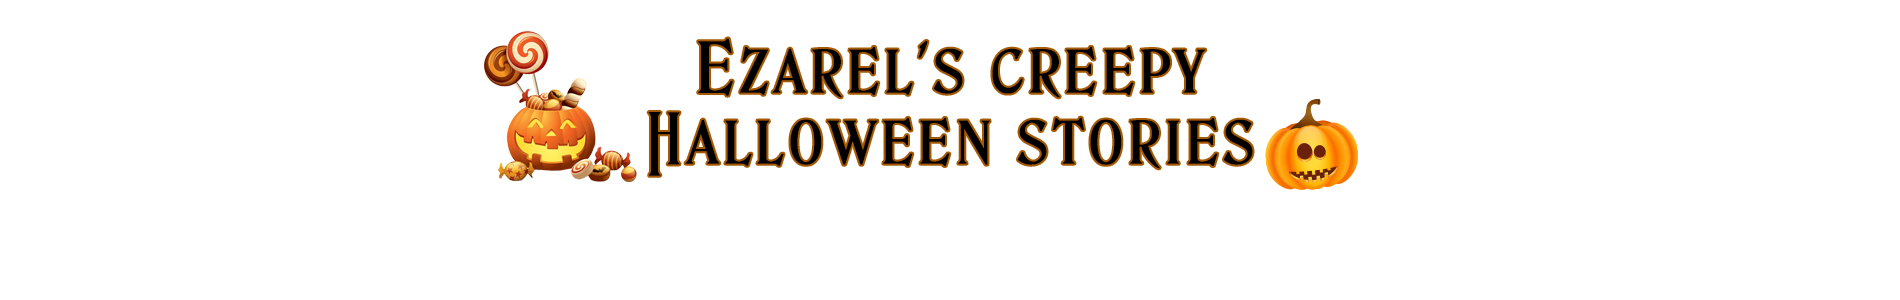 Ezarel's creepy Halloween stories